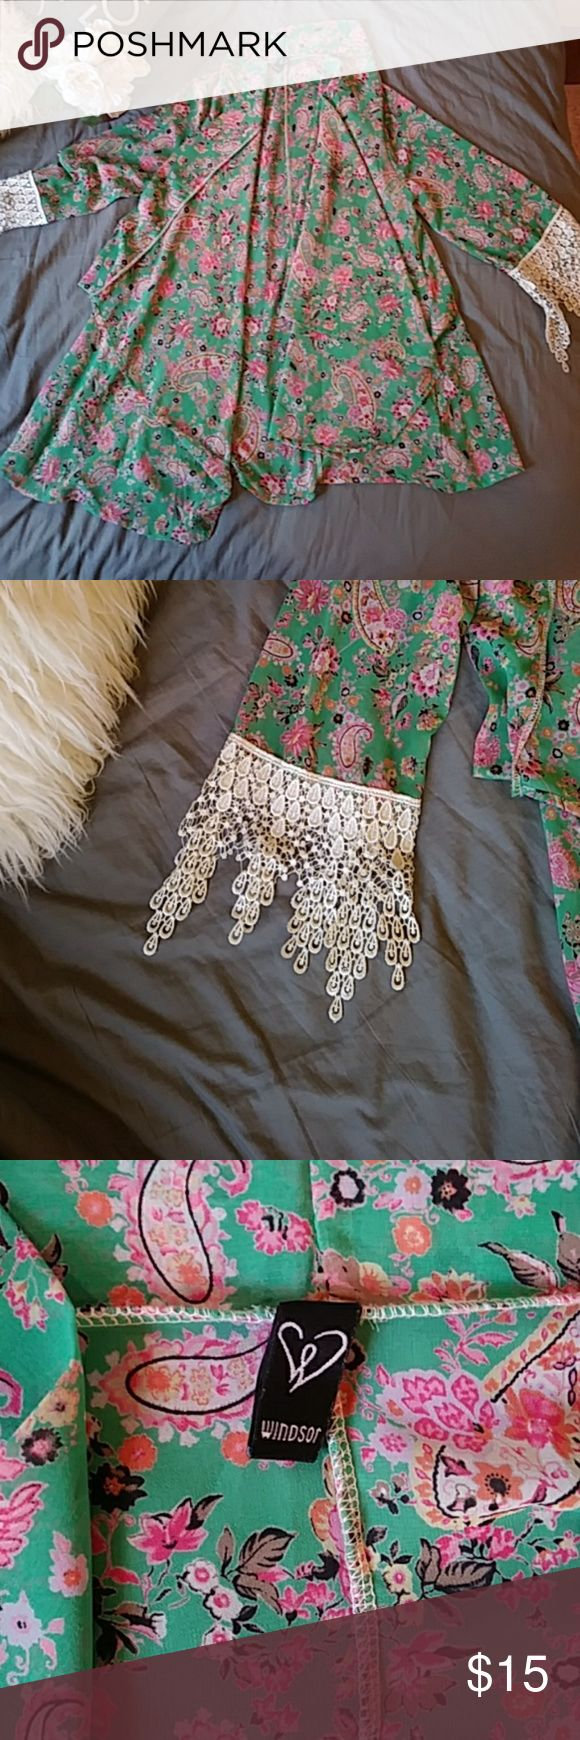 Kimono type cover Light grean with pink flowers and paisley print Tops Blouses